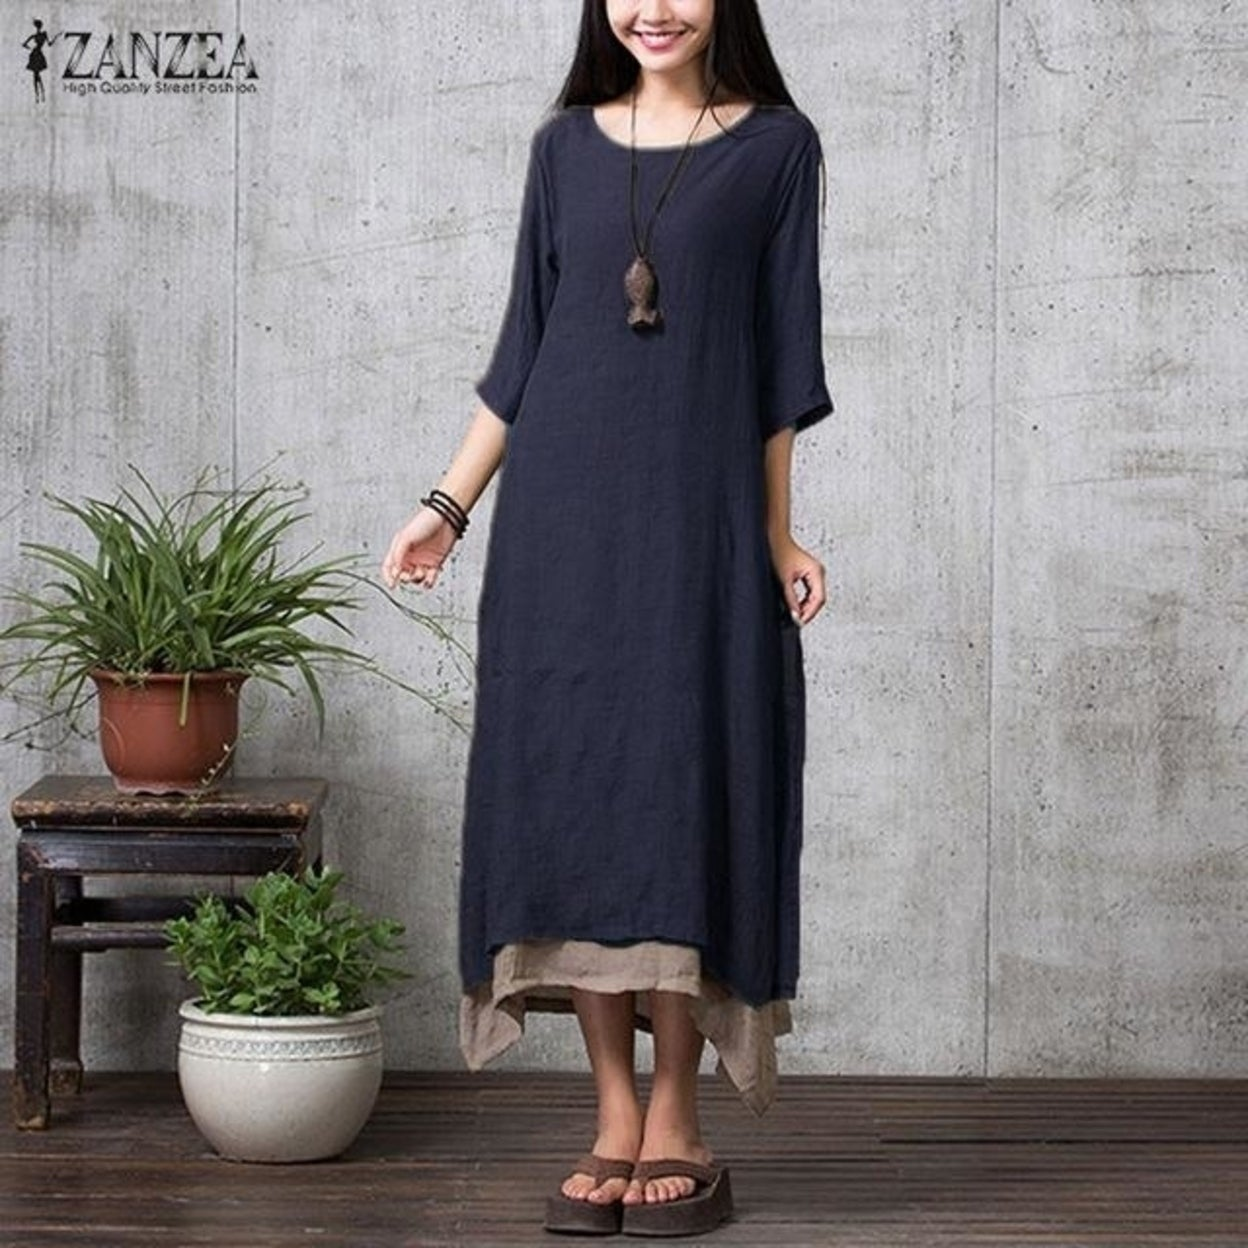 8fa35c9f72d ZANZEA Fashion Cotton Linen Vintage Dress 2017 Summer Autumn Women Casual Loose  Boho Long Maxi Dresses Vestidos Plus Size